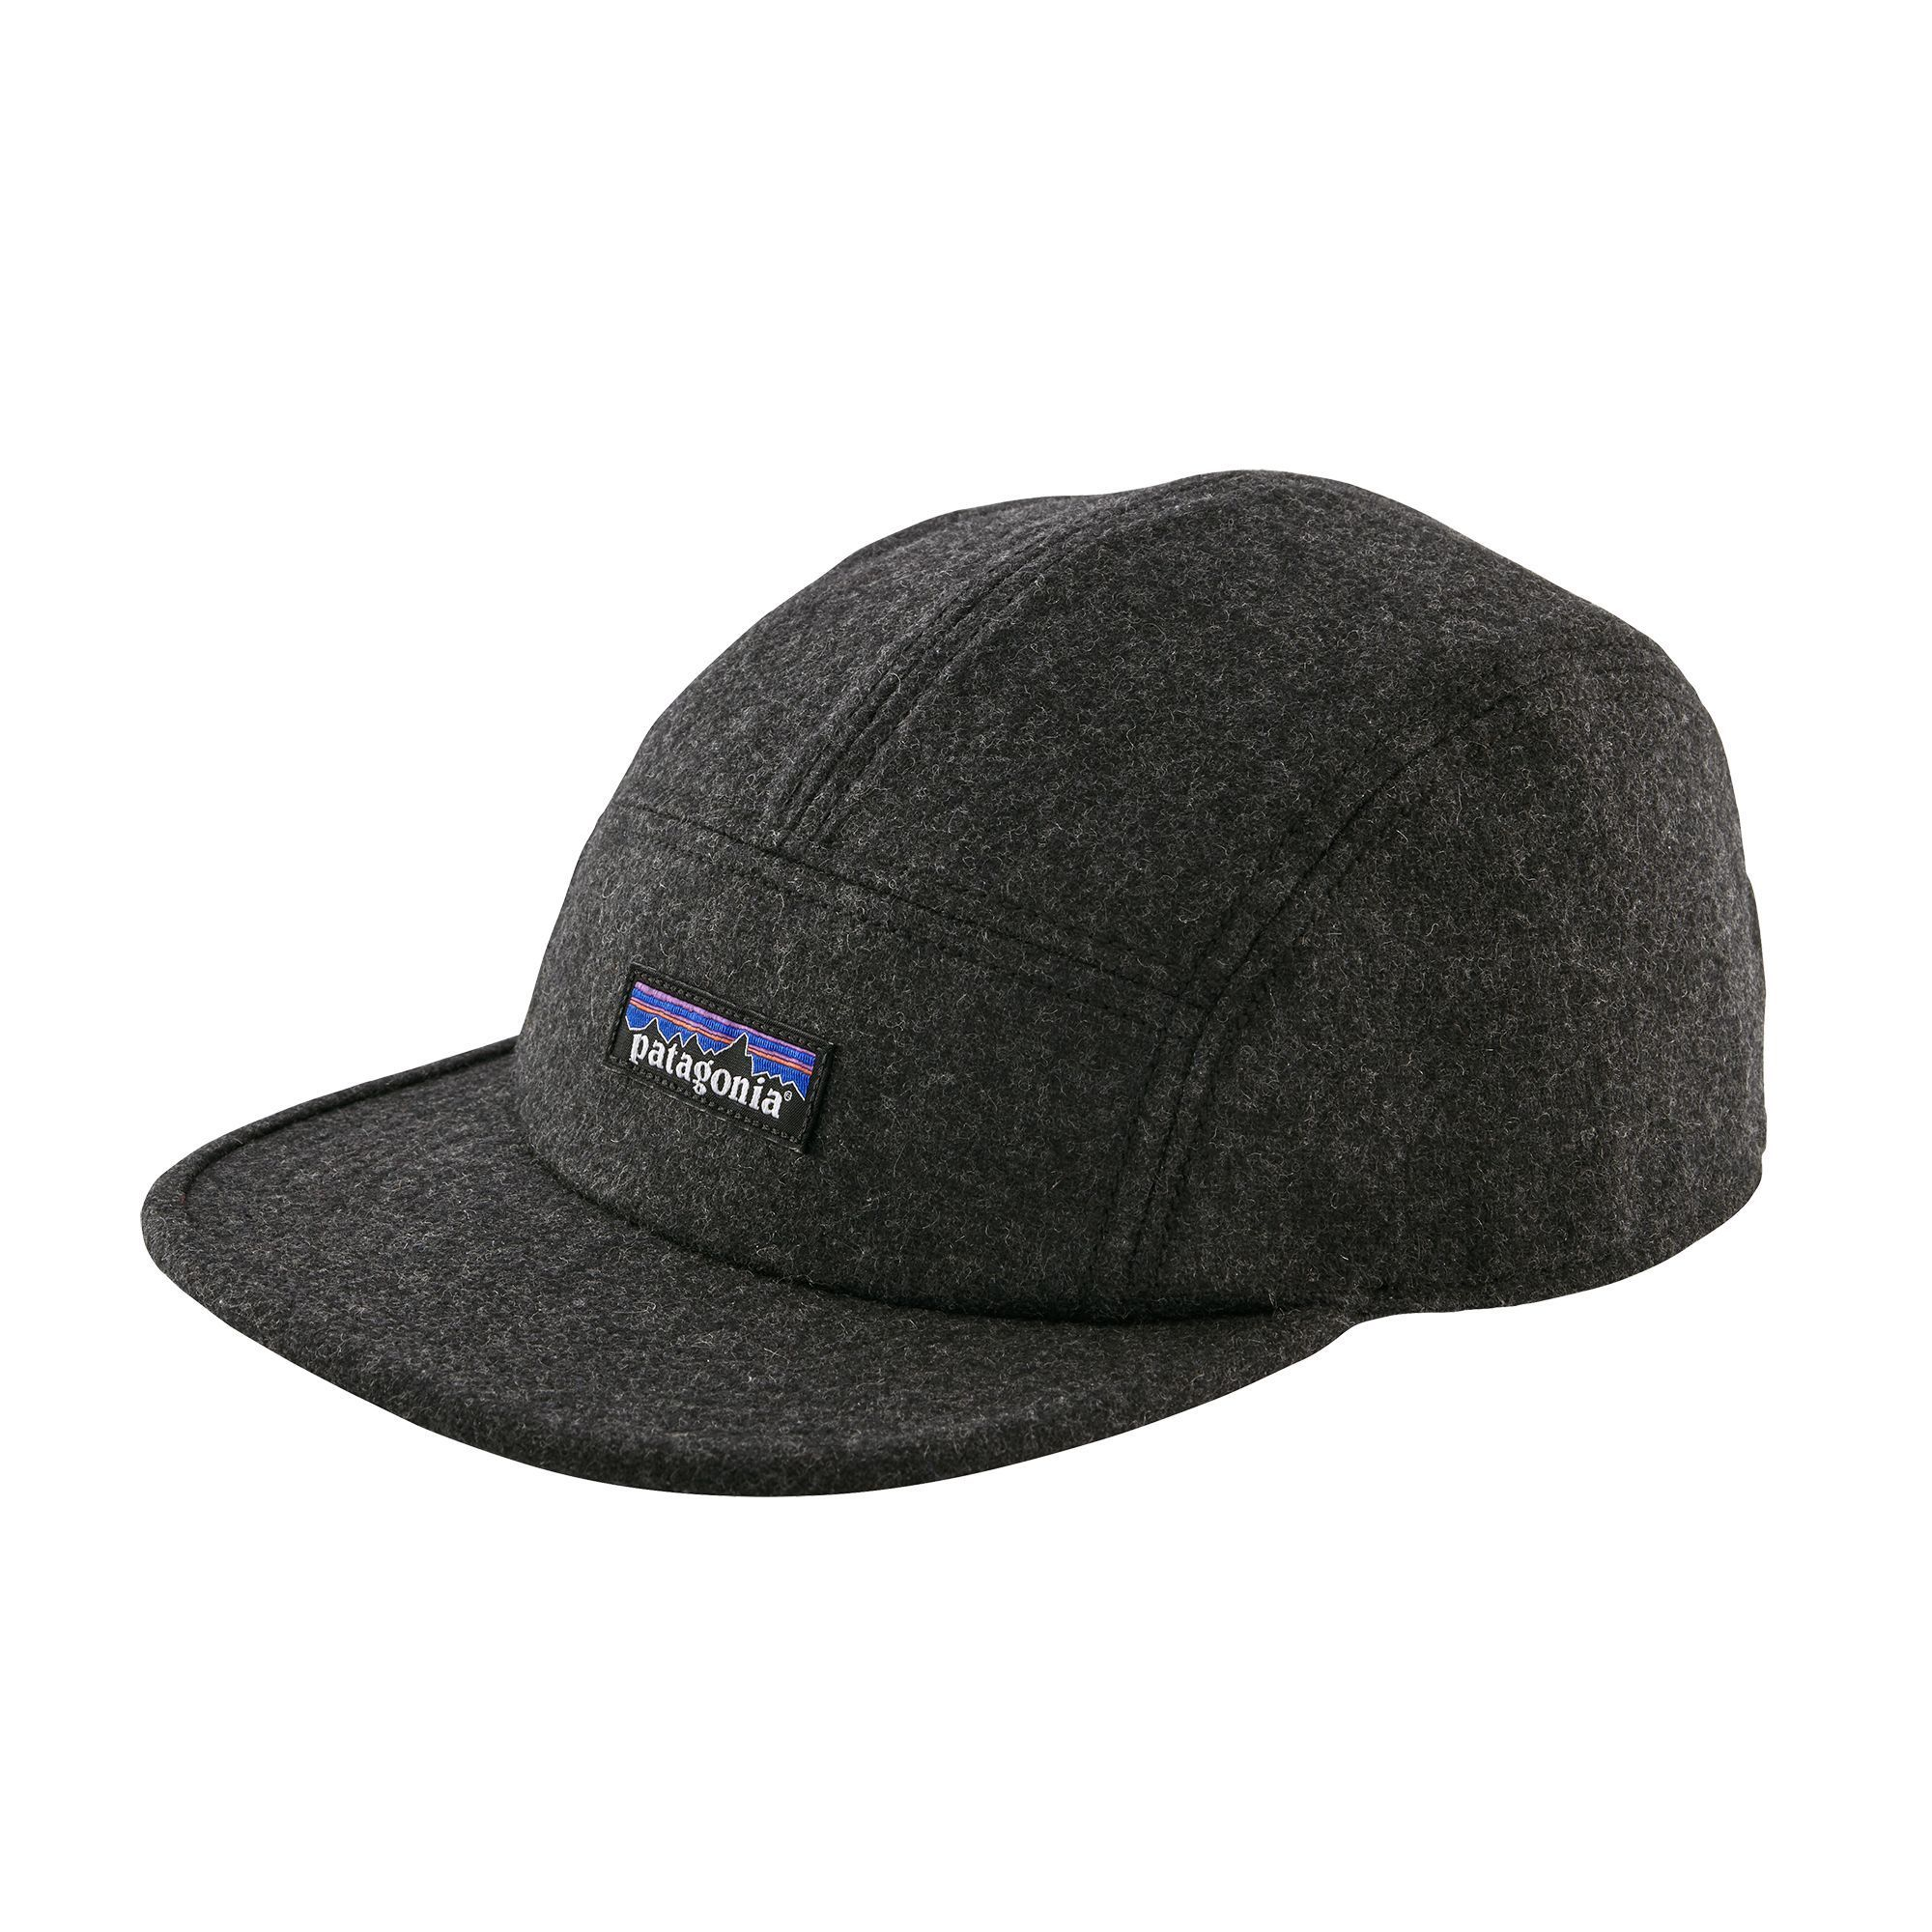 5d511380 Patagonia Recycled Wool Cap - Forge Grey   Products   Patagonia ...